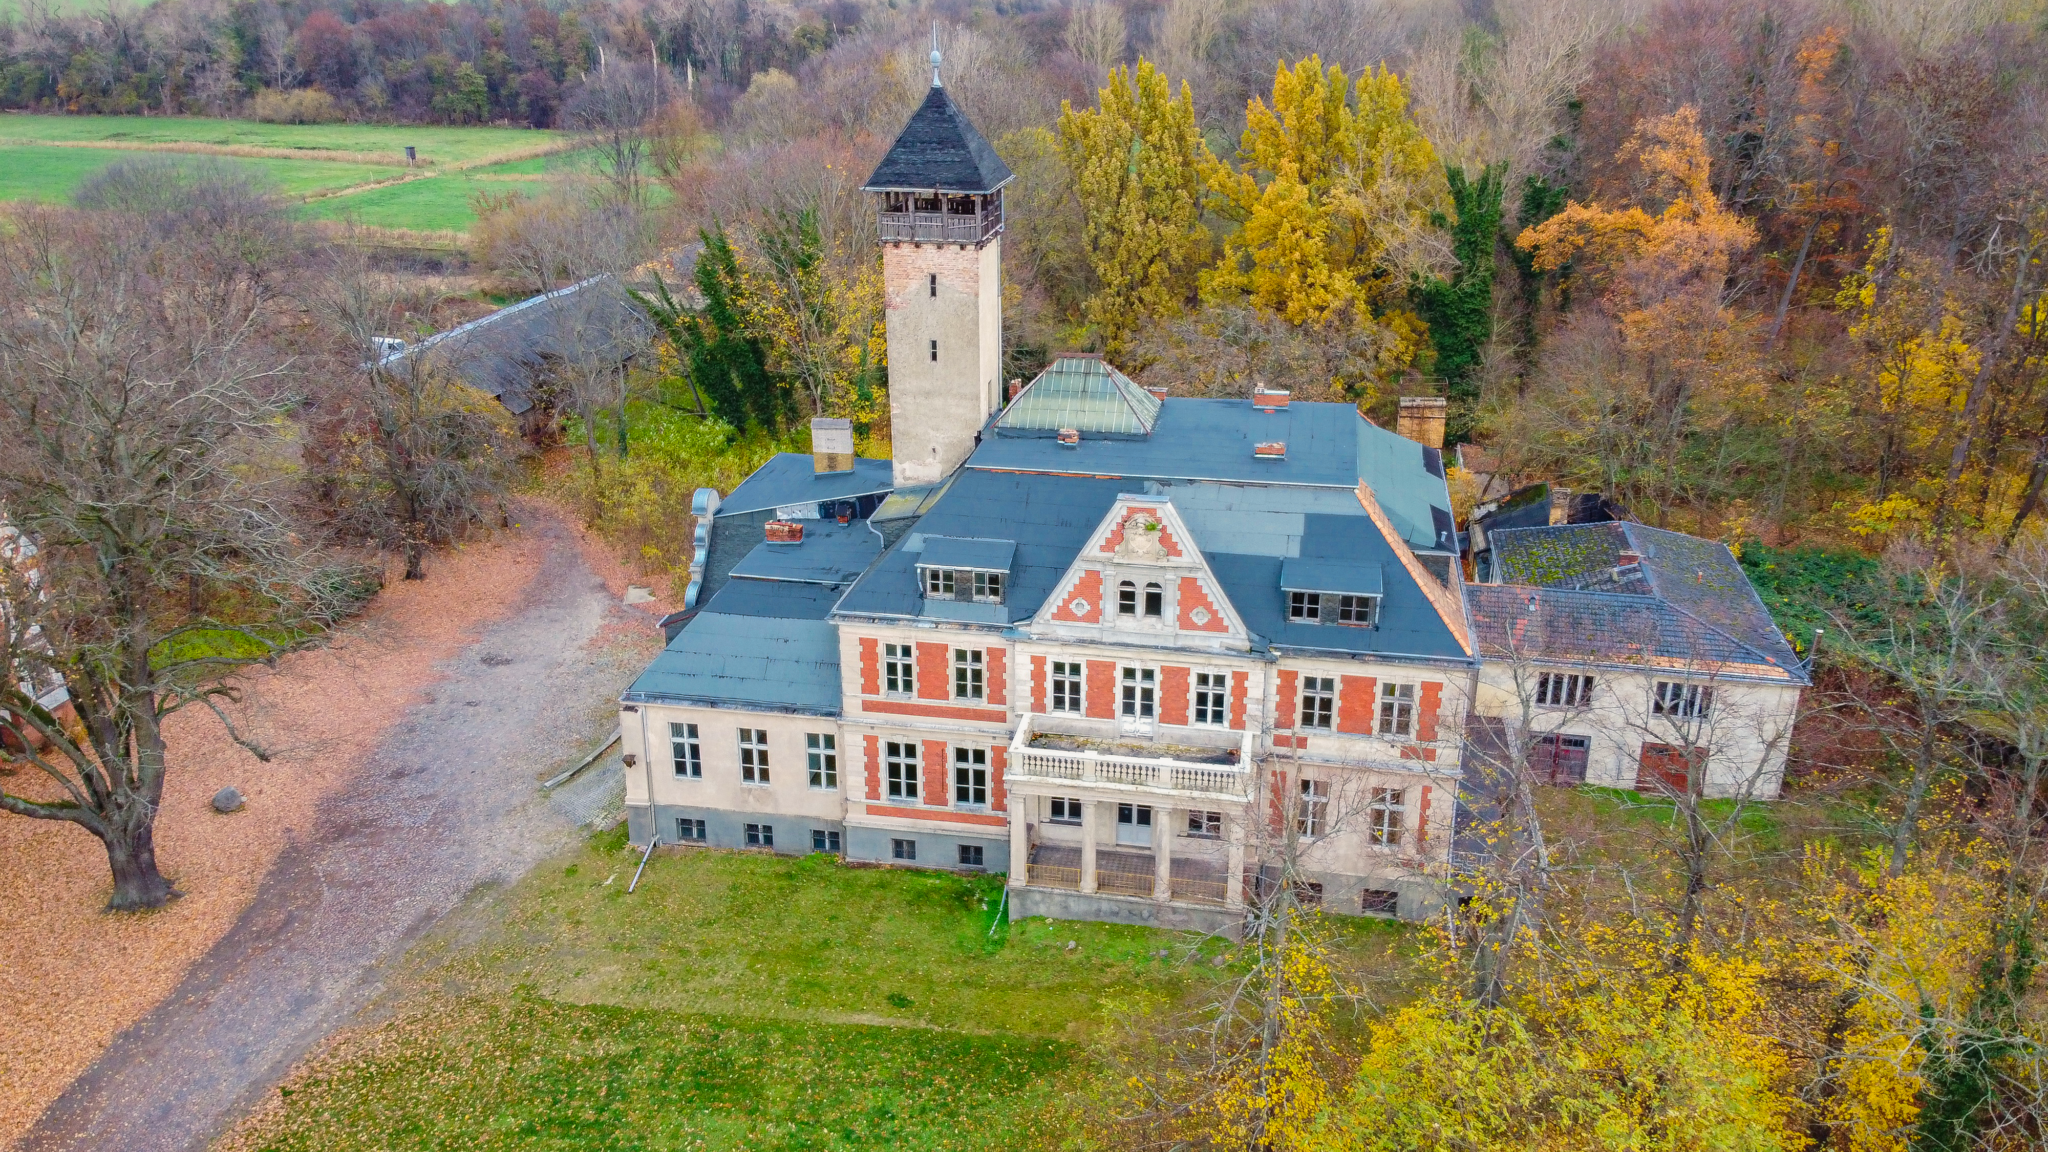 A location used for filming 'Queen's Gambit,' Schloss Schulzendorf in Germany, outside Berlin, November 2020. (courtesy: Felipe Tofani/Fotostrasse.com)